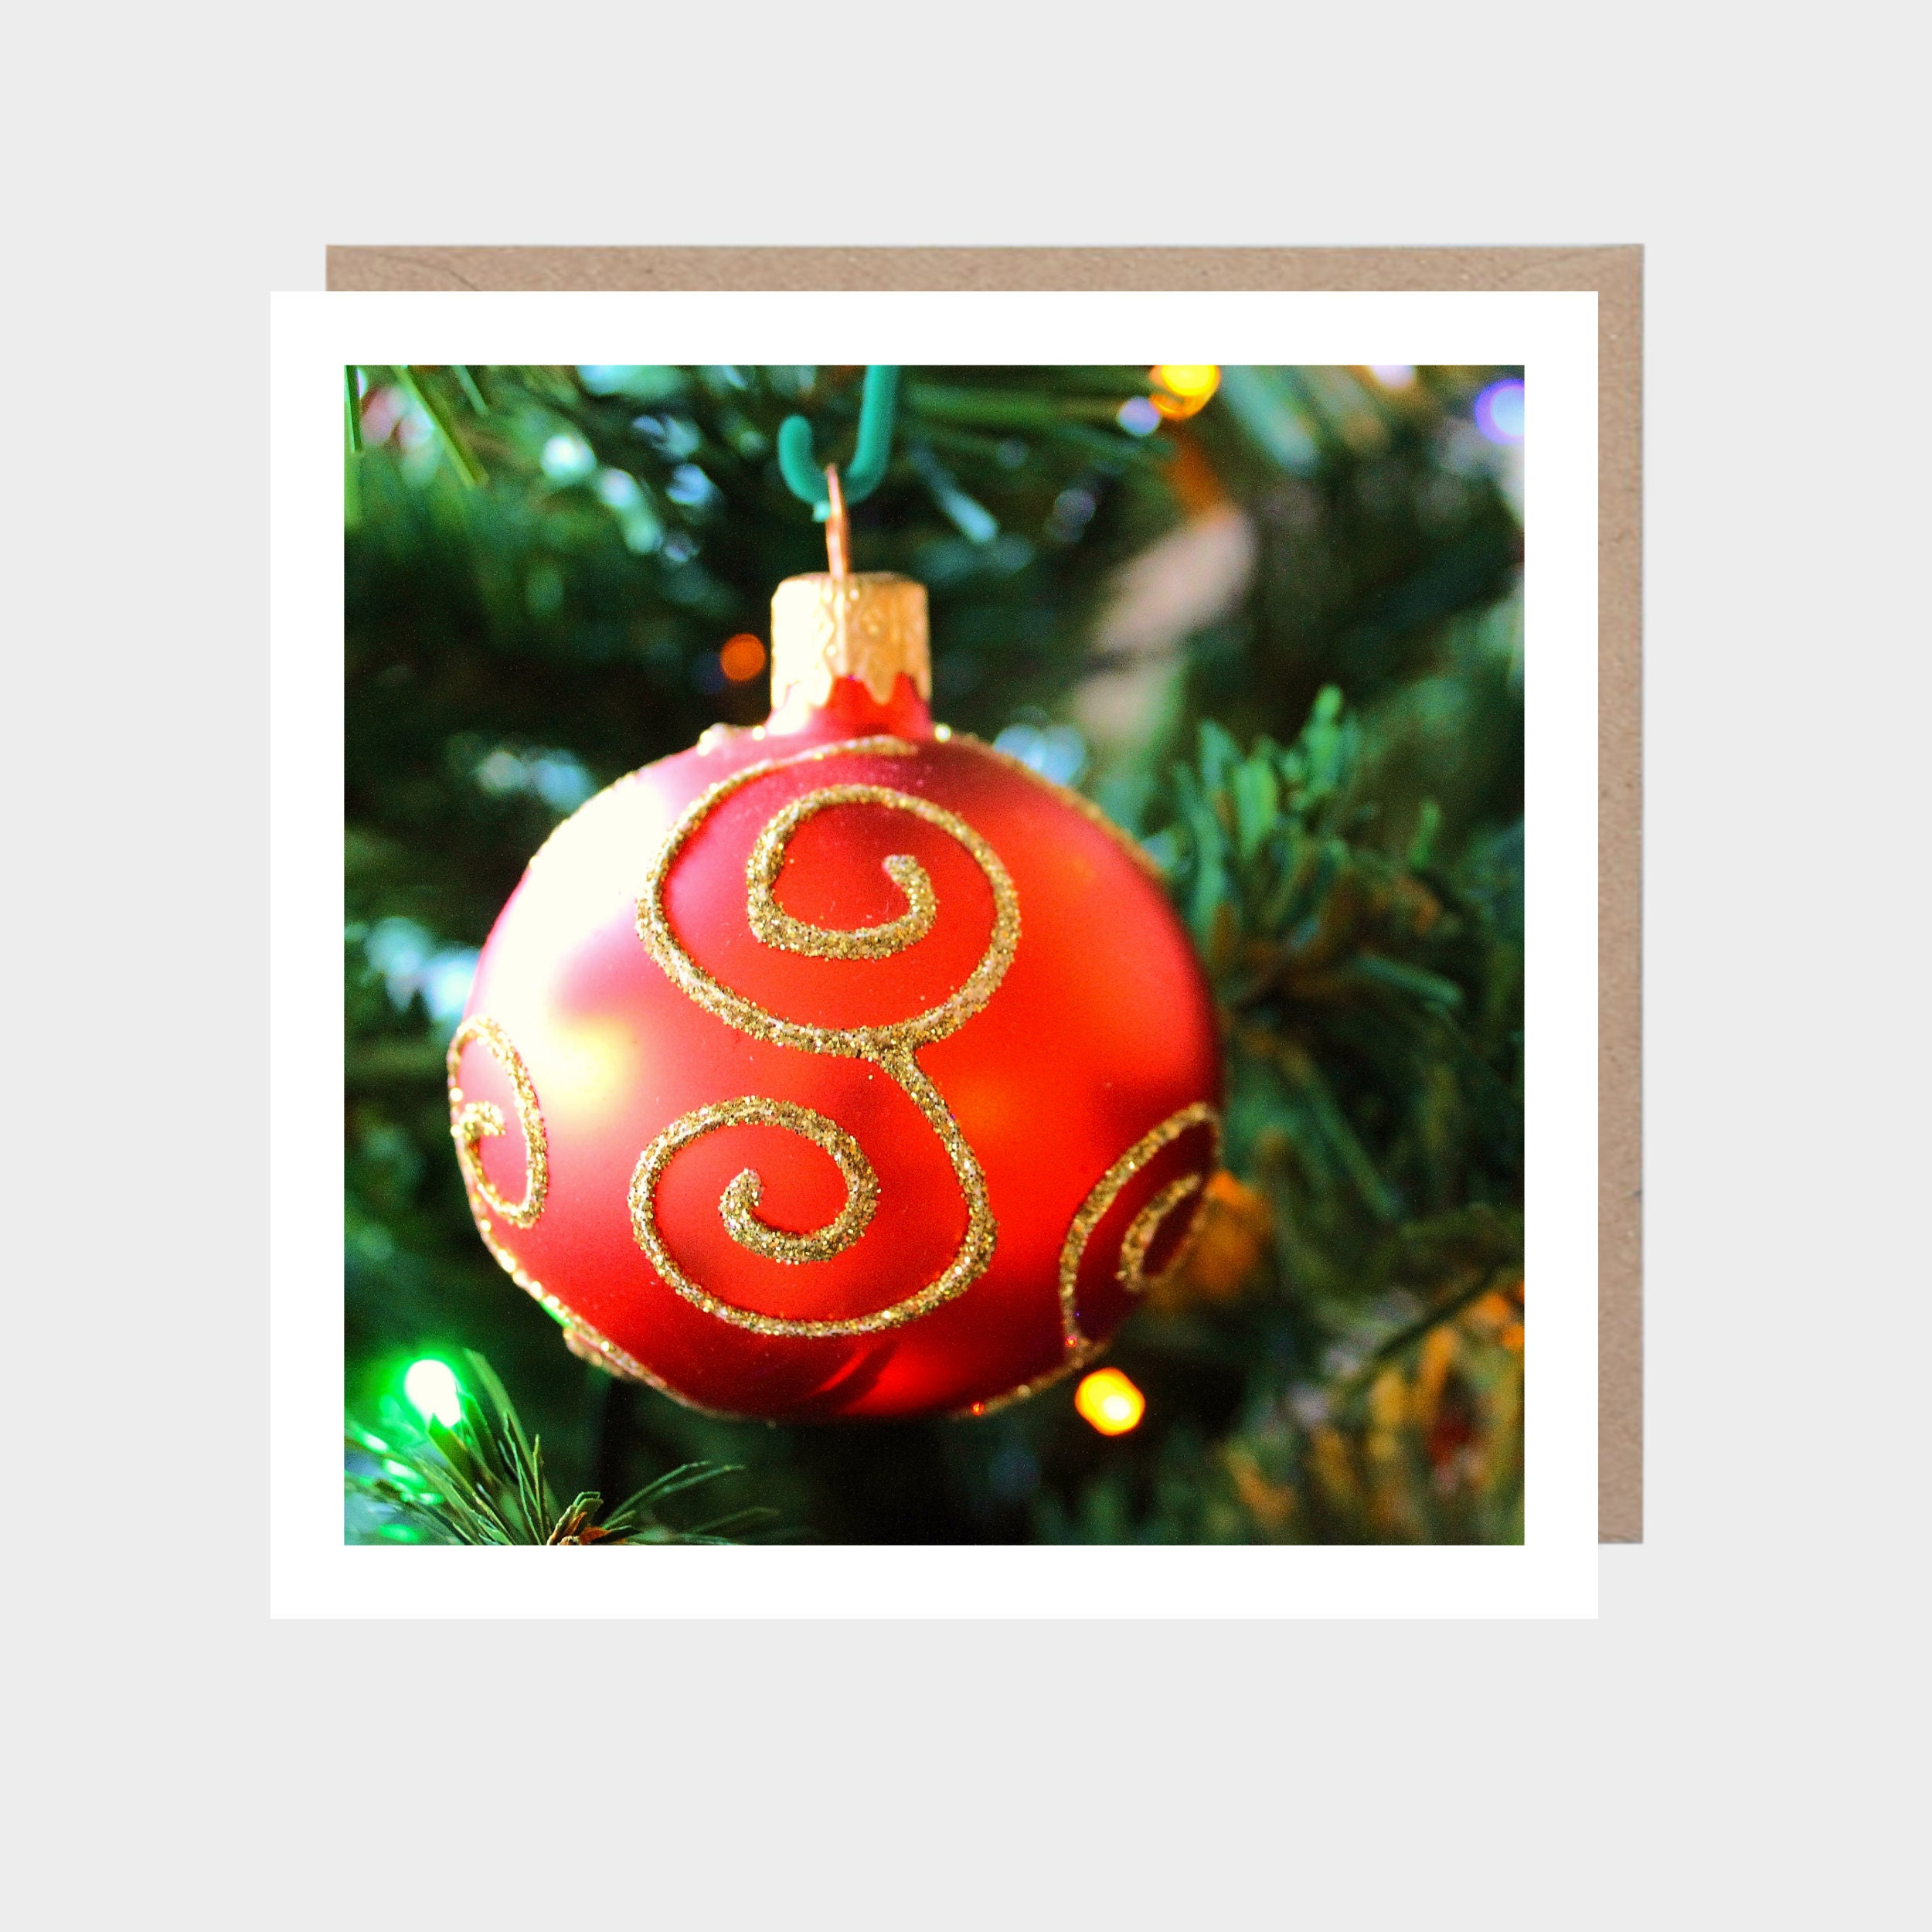 Square card with a close-up photo of a red and gold bauble, with a brown kraft envelope